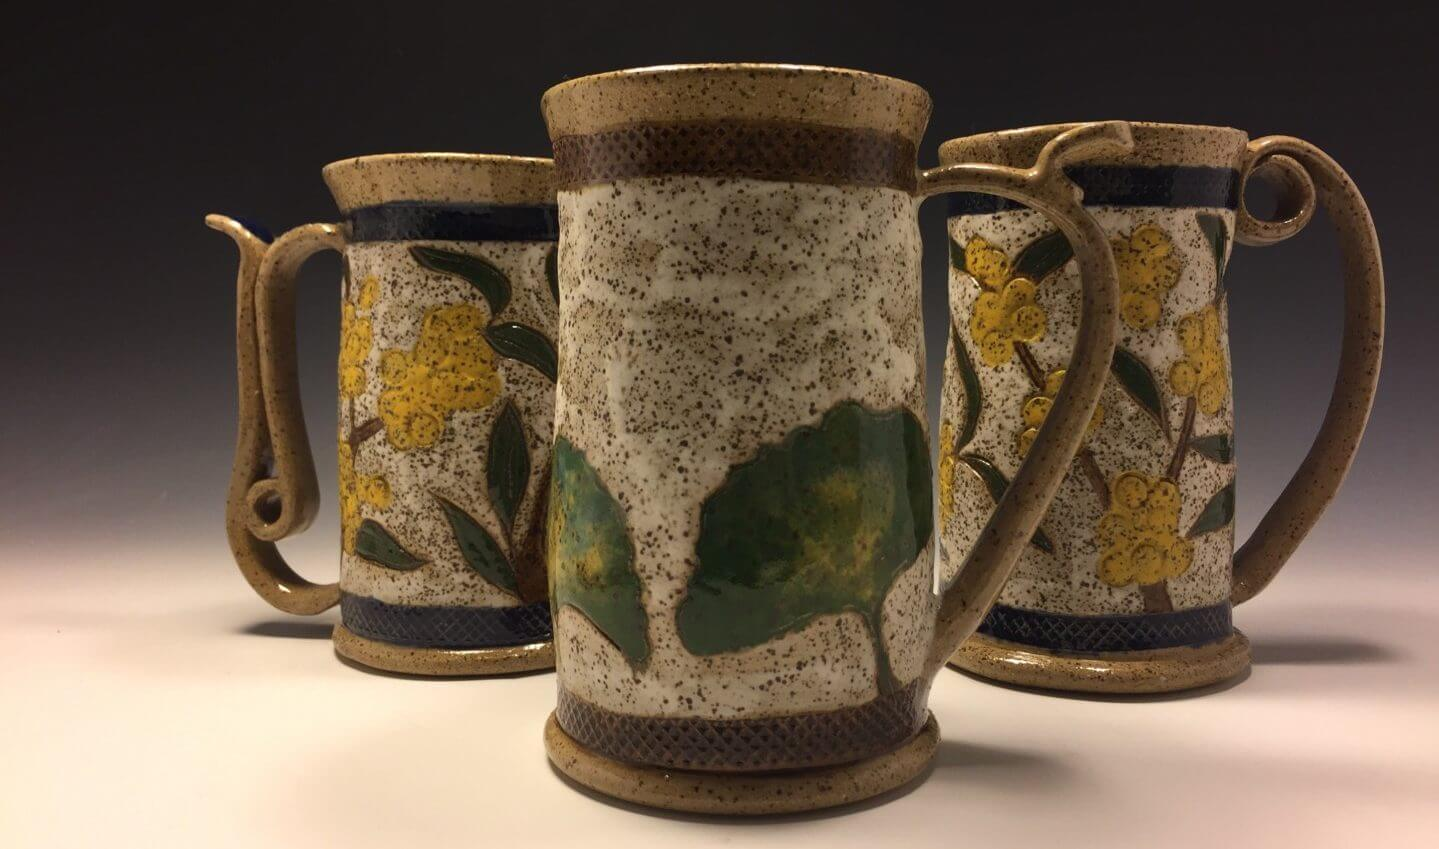 I Heart New Jersey - Clay and Pottery Artists